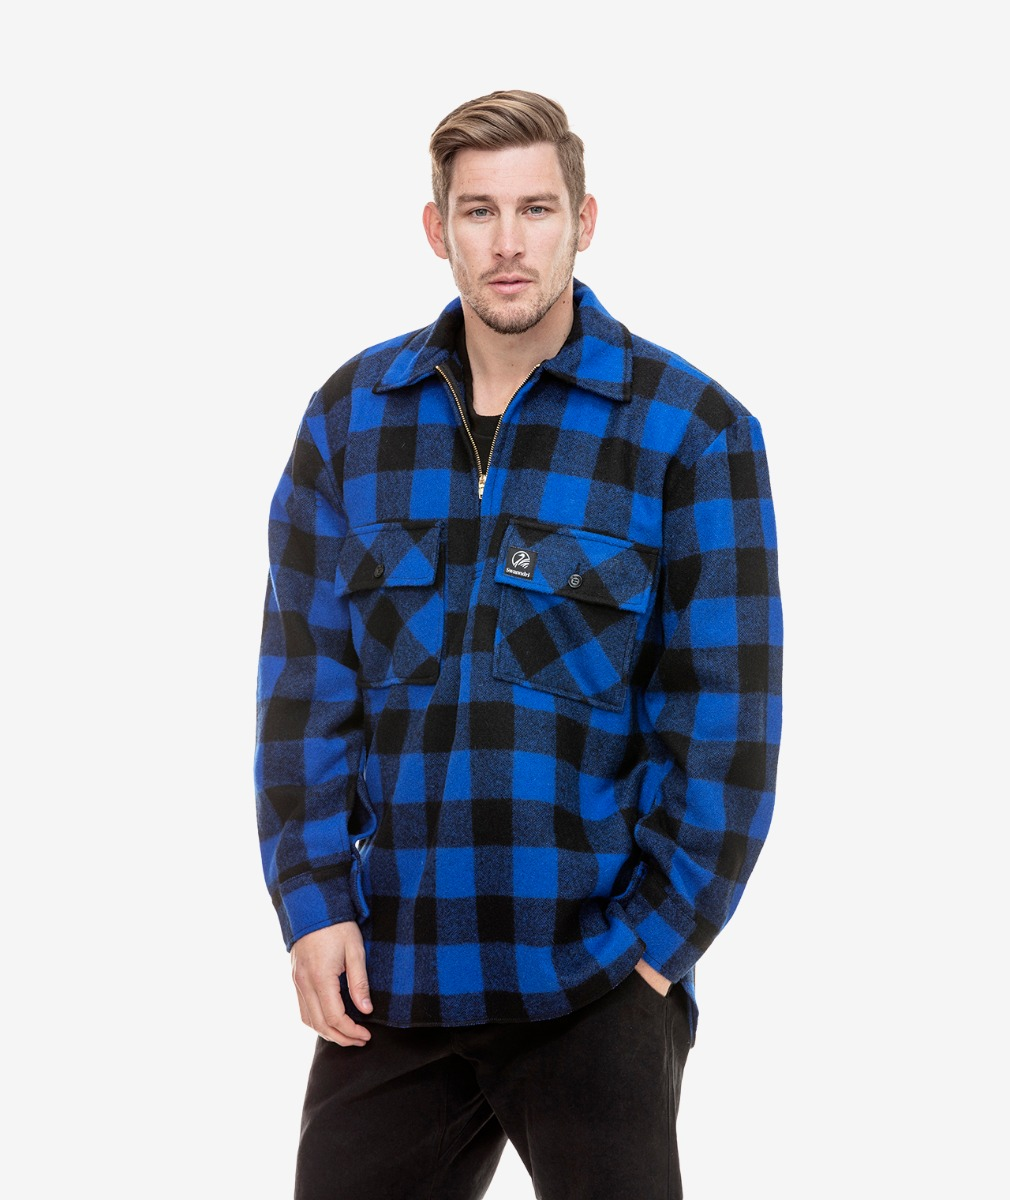 Men's Ranger Wool Zip Front Bush Shirt in Blue/Black Check